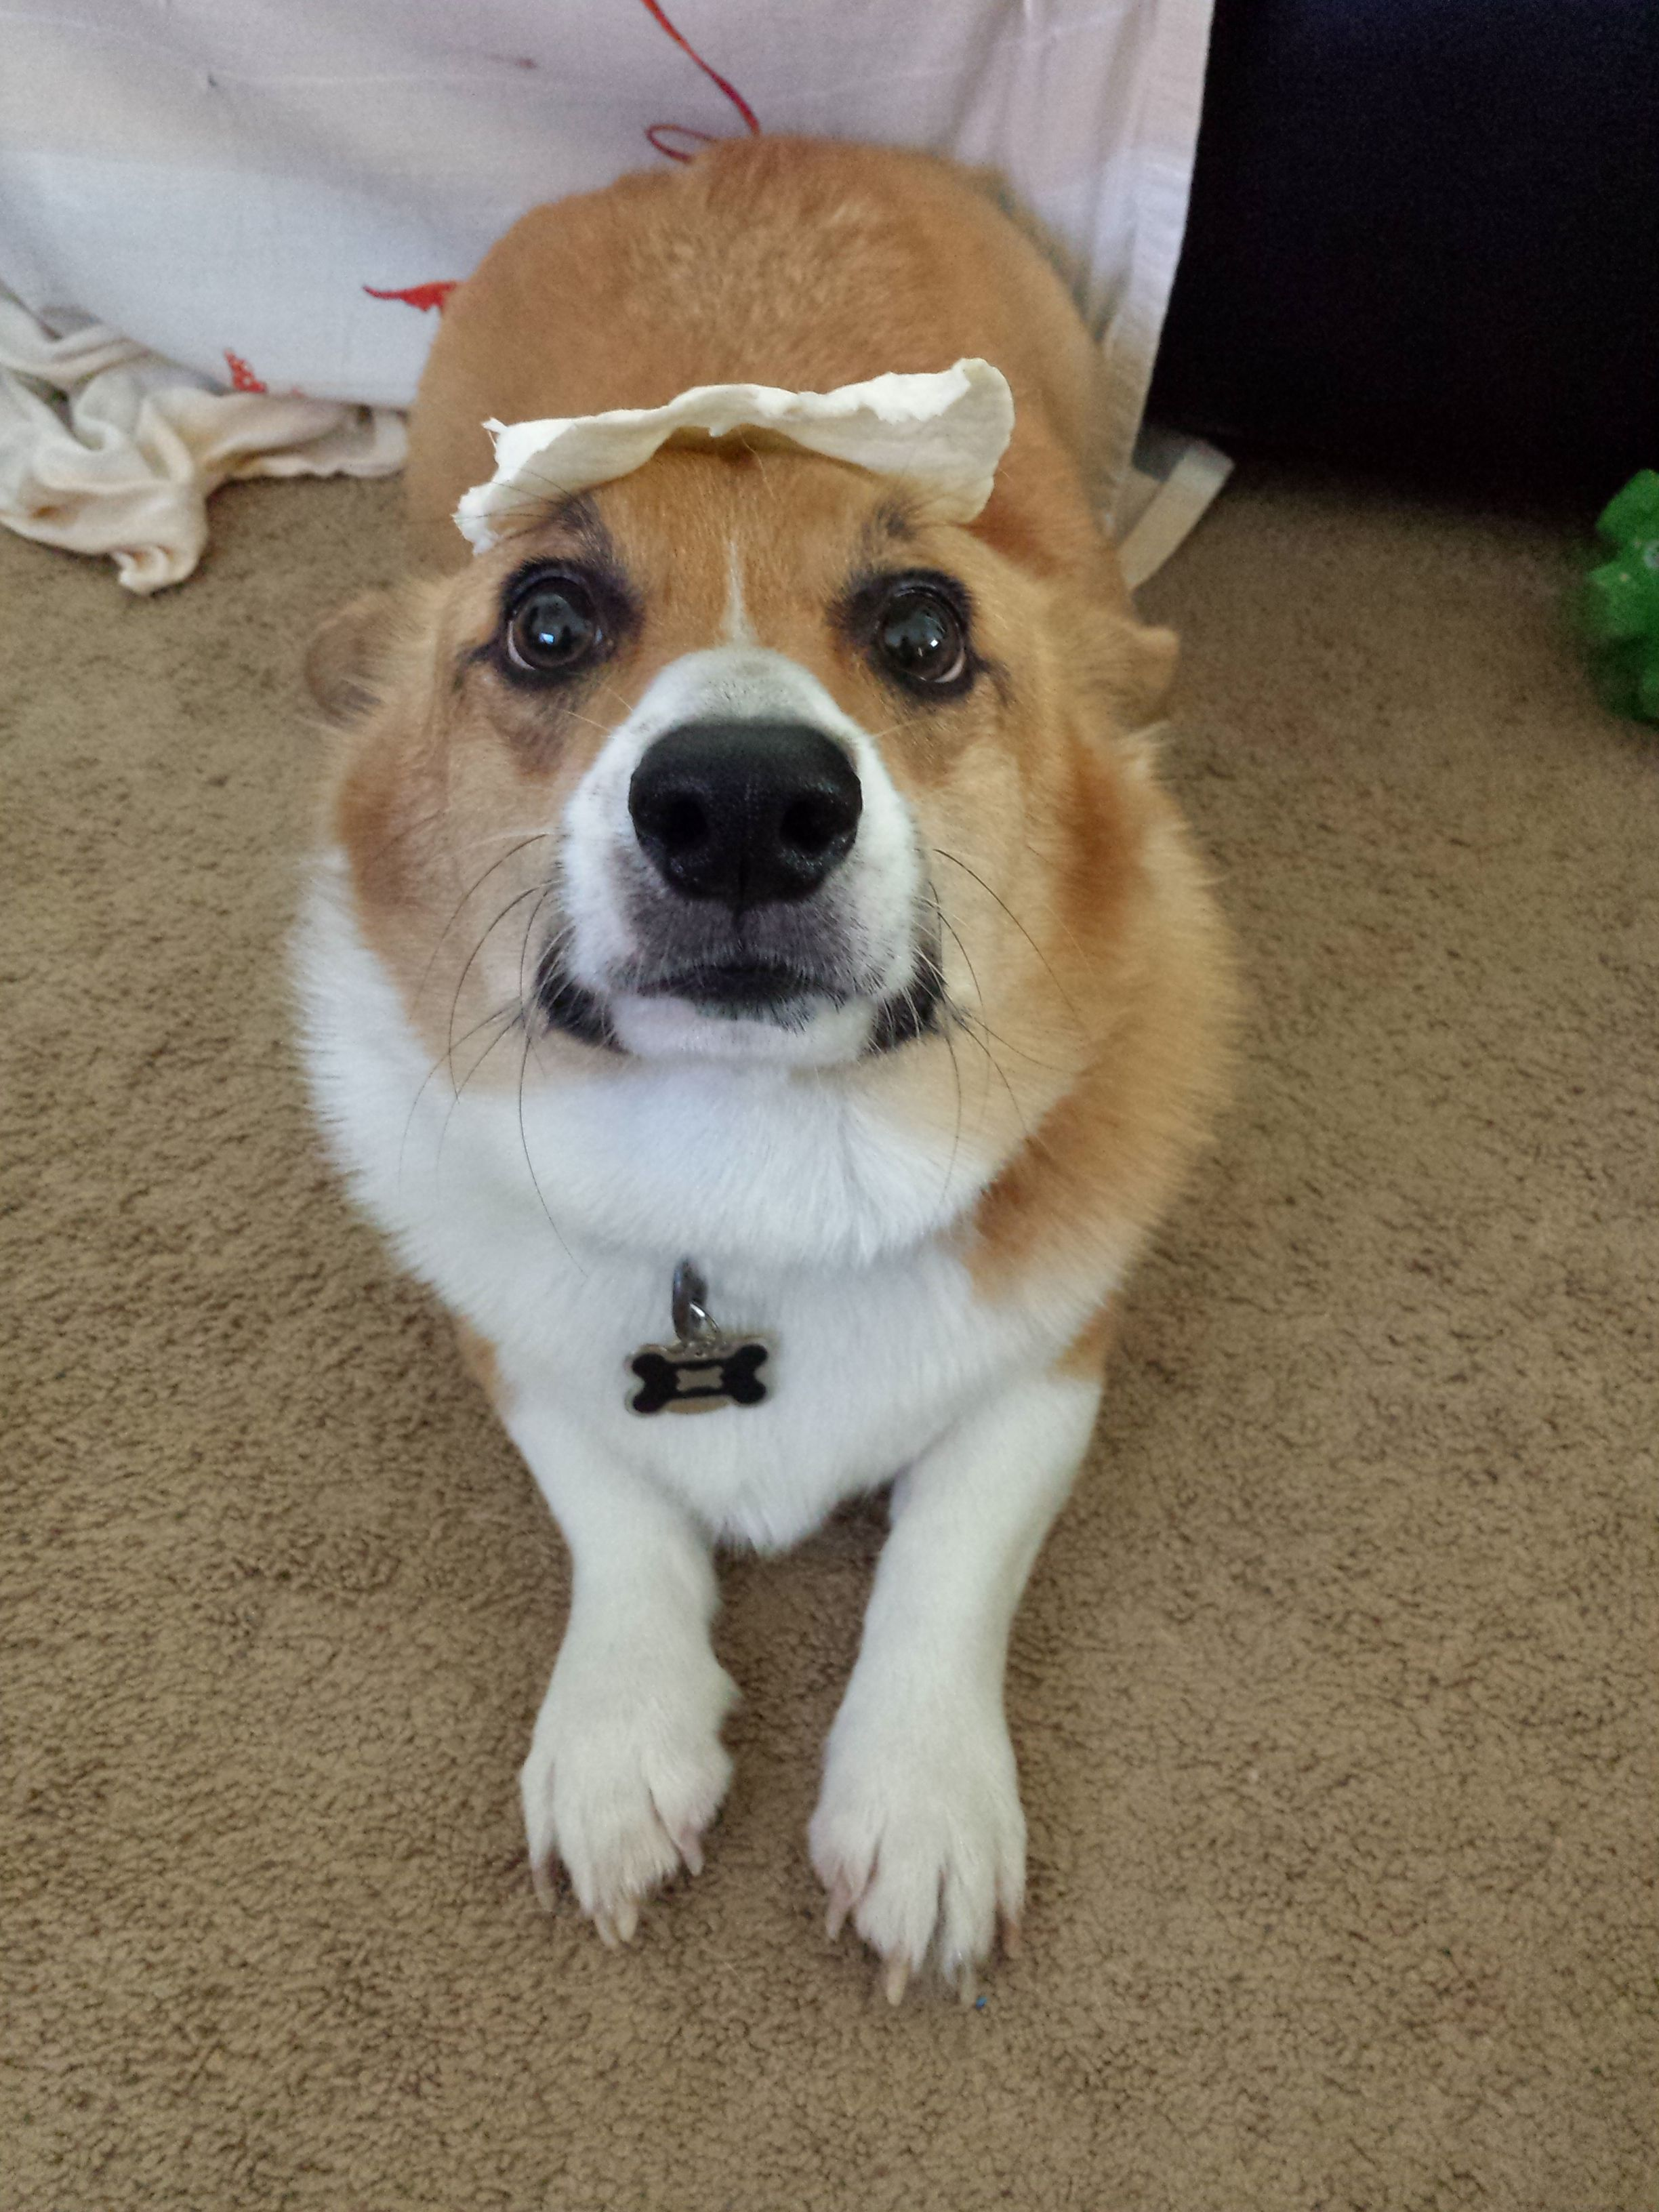 Ever Wondered What A Corgi Looks Like Without The Big Ears